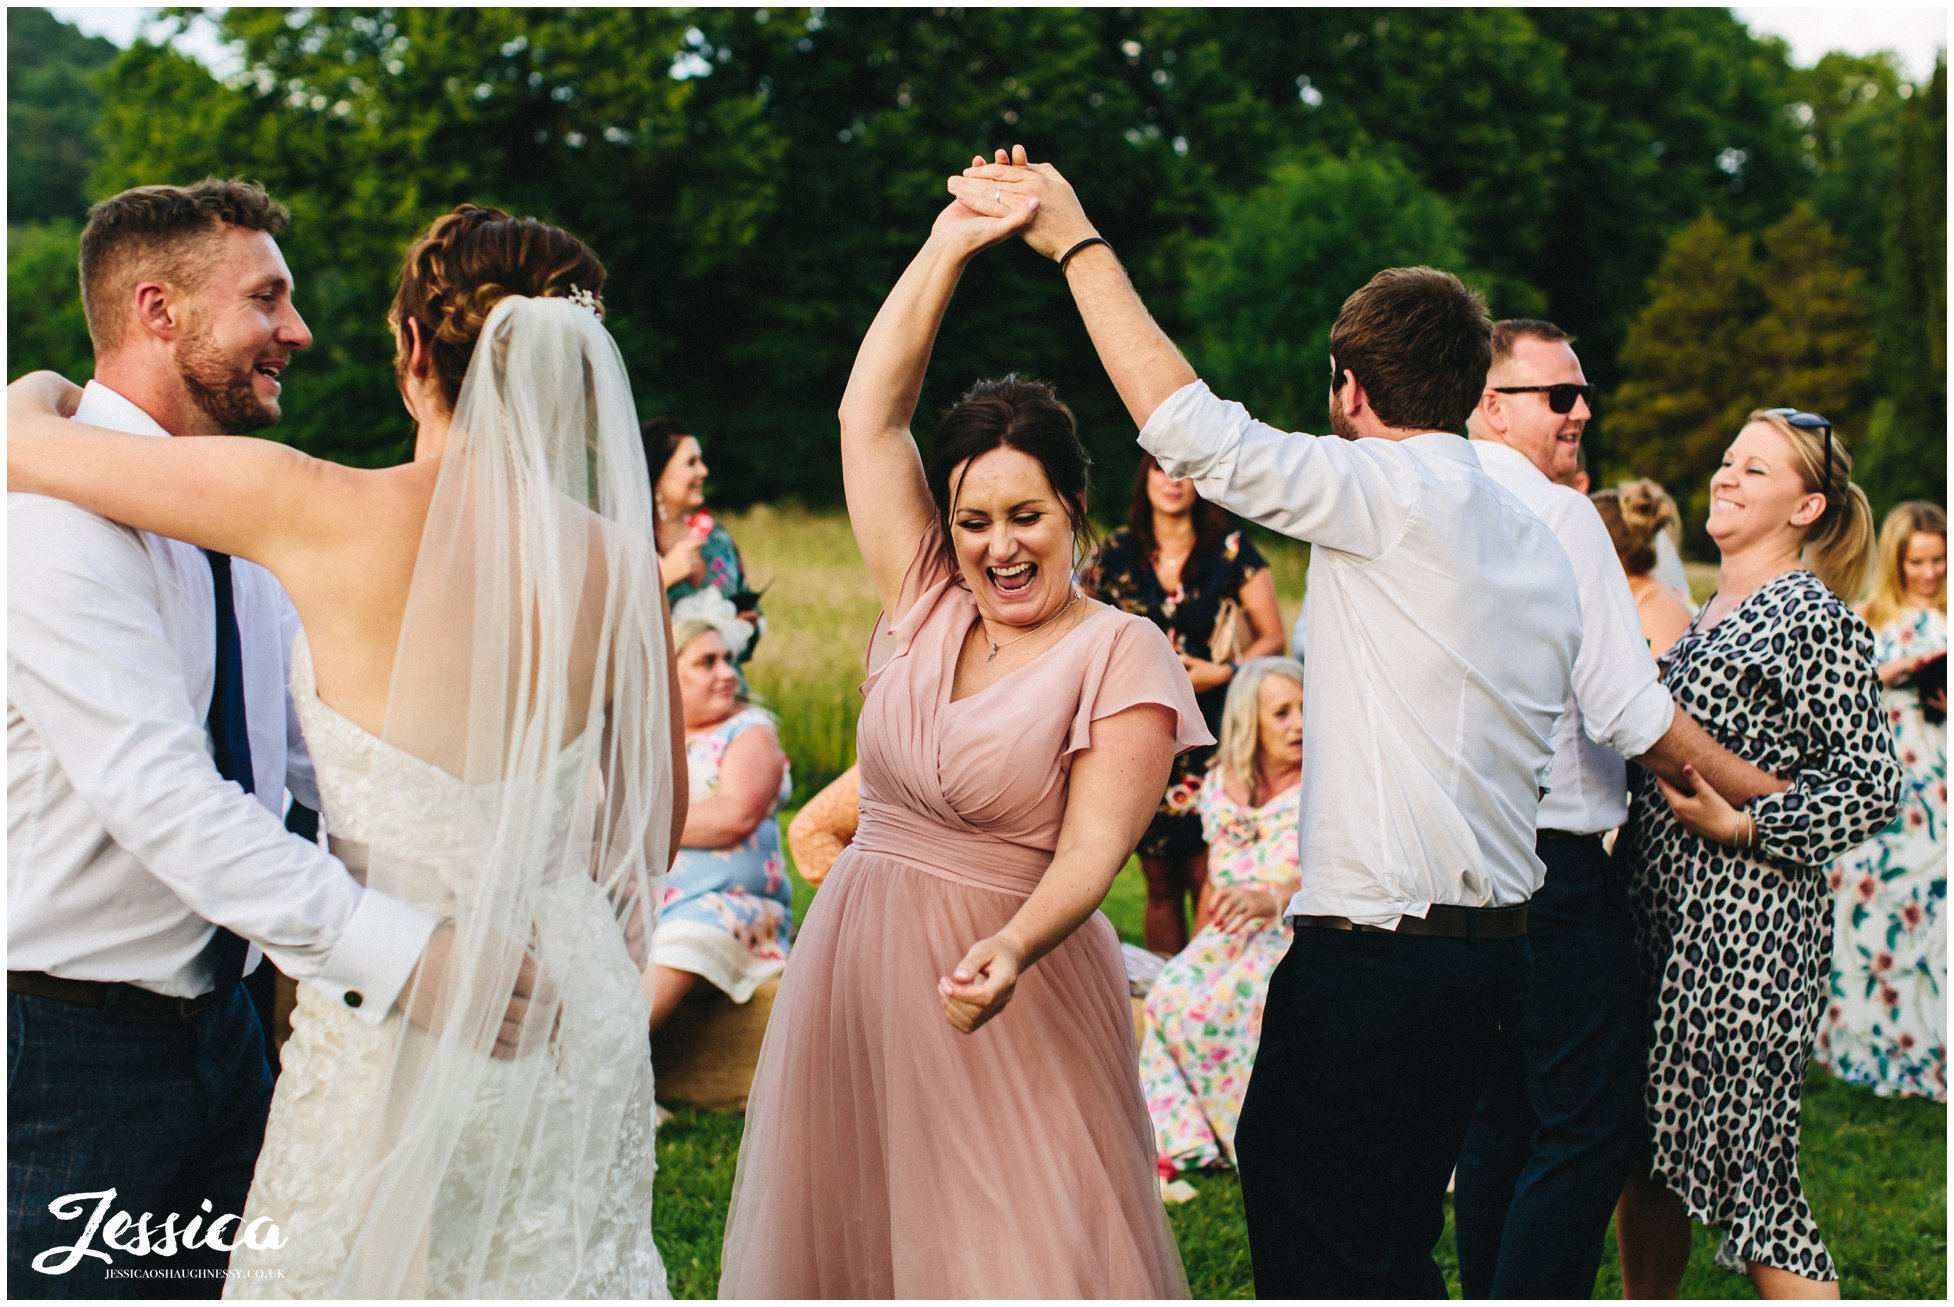 guests join the couple and dance outside on the lawn